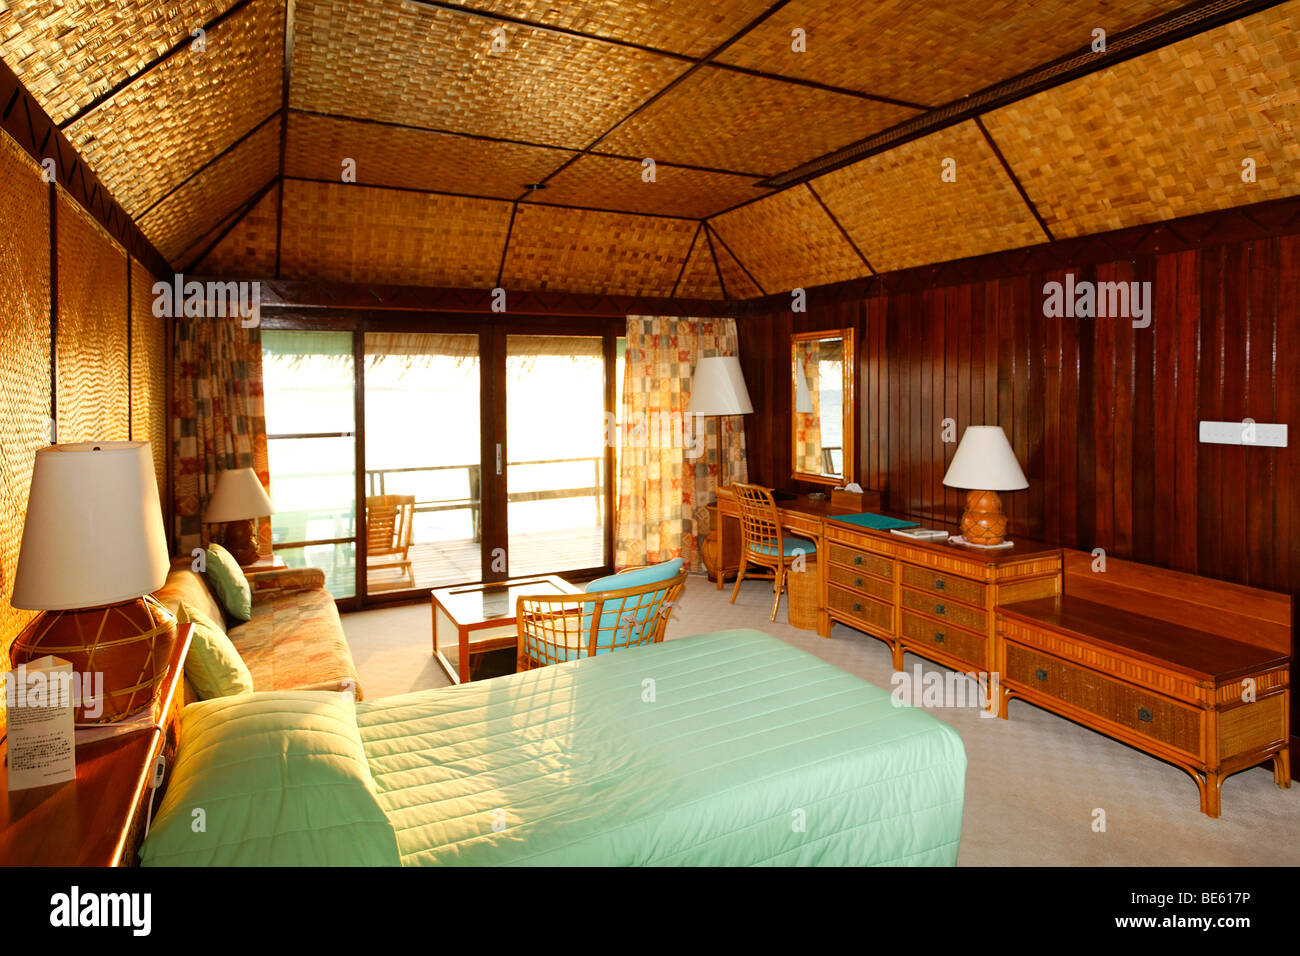 Water Bungalow Interior Vadoo Island South Male Atoll Maldives Archipelago Indian Ocean Asia